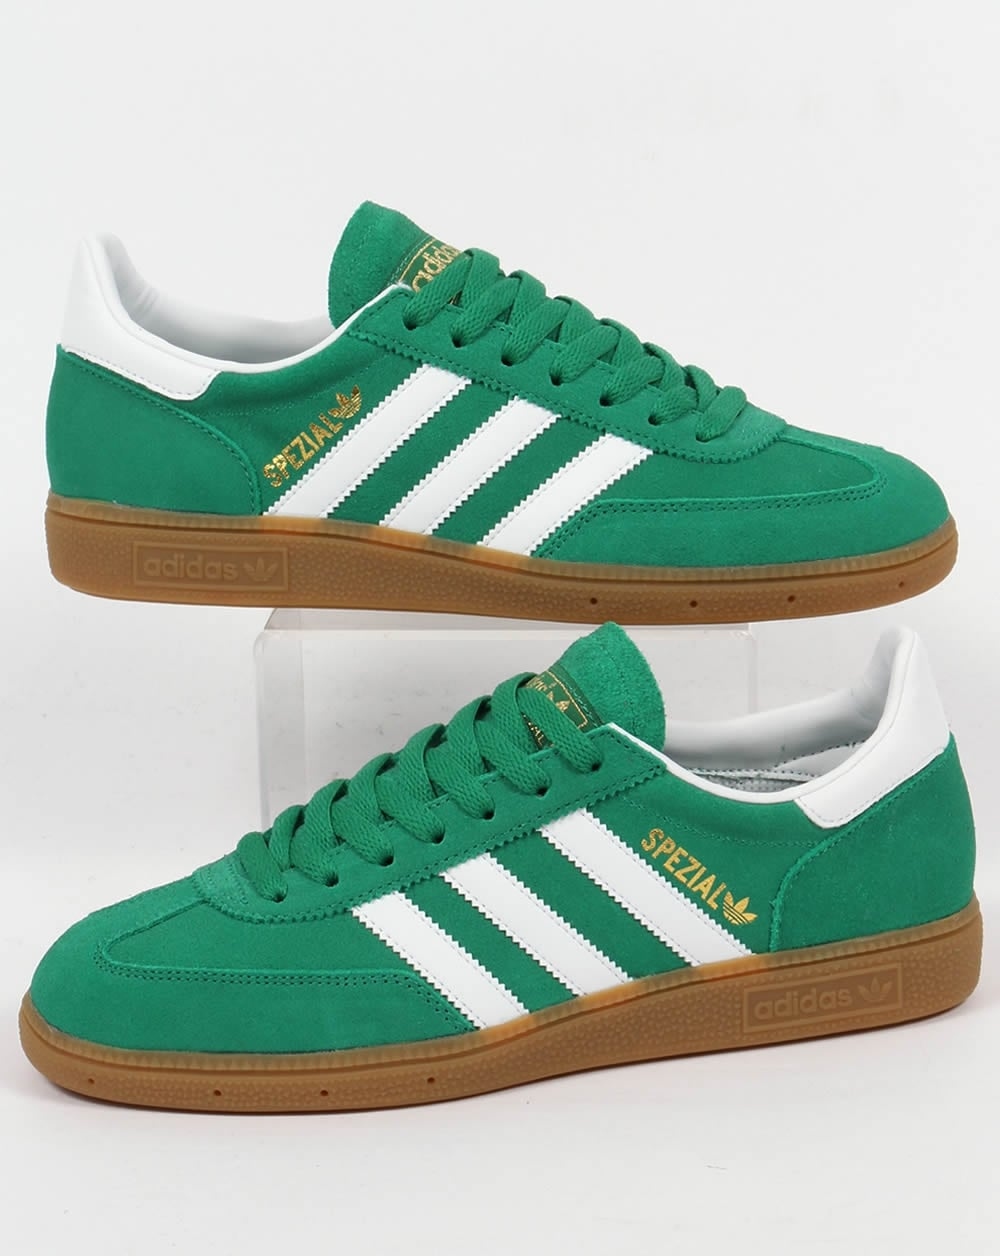 flota Reanimar O después  adidas spezial green and white Cheaper Than Retail Price> Buy Clothing,  Accessories and lifestyle products for women & men -